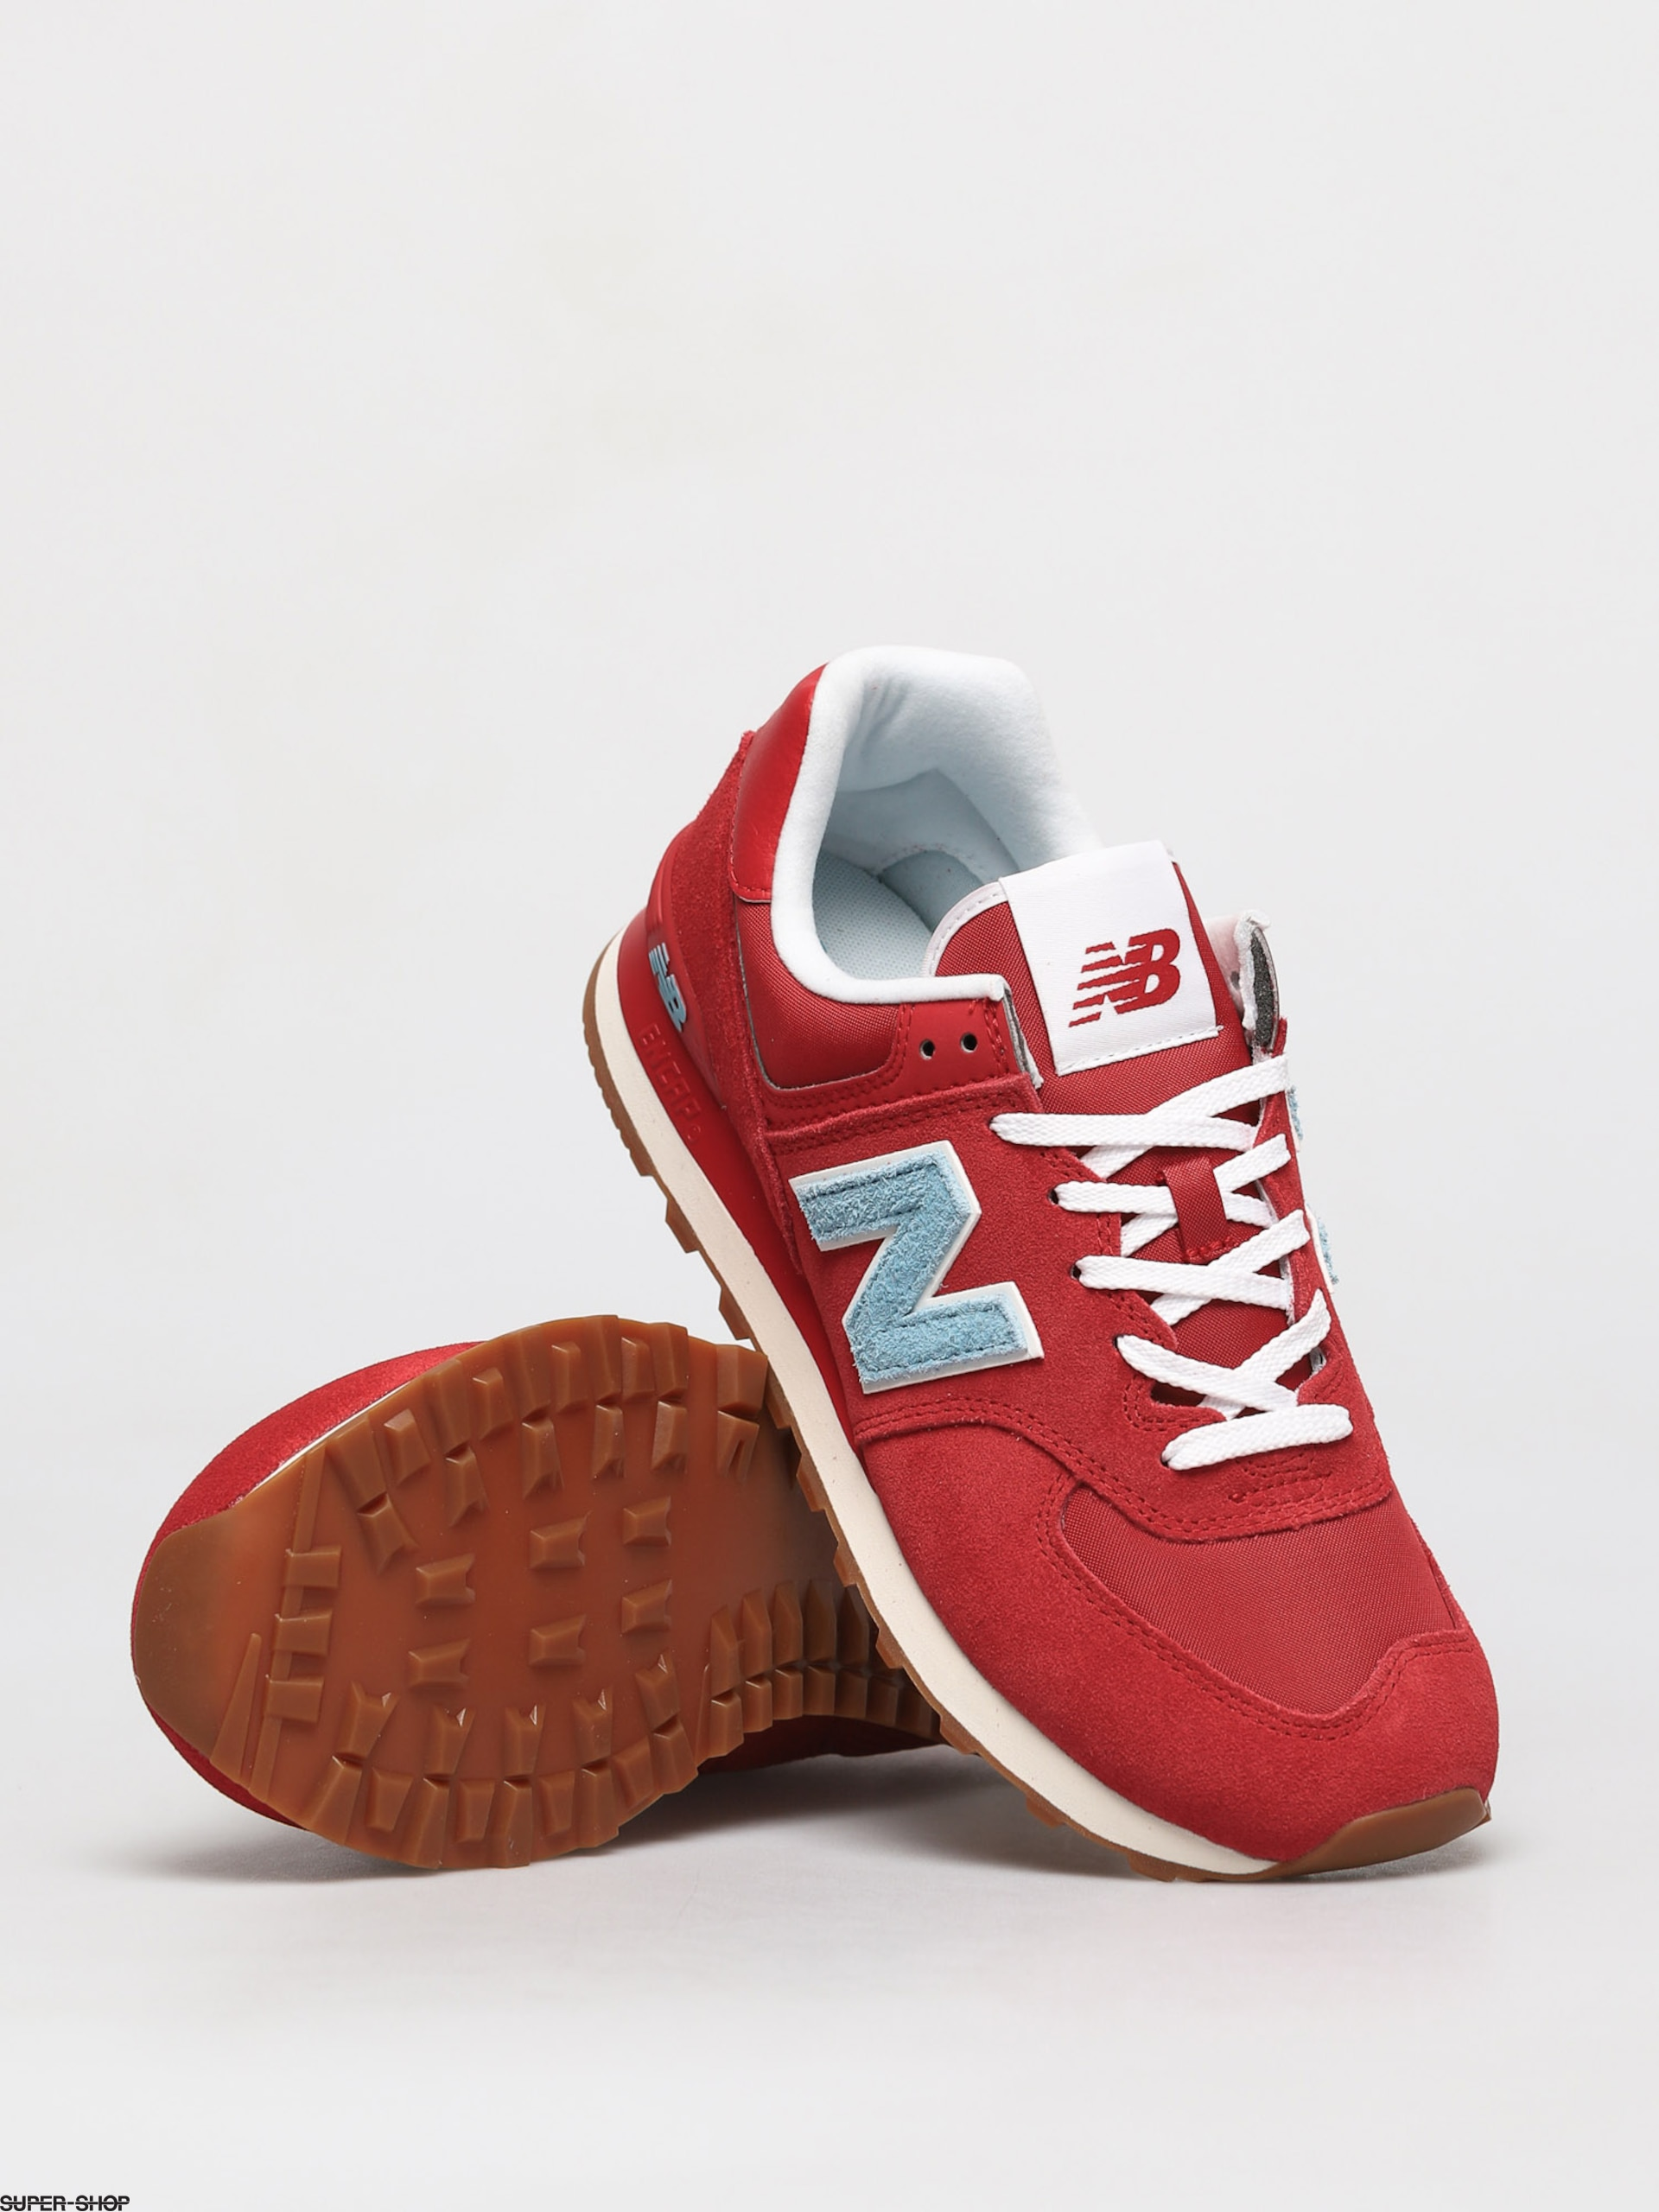 New Balance 574 Shoes (red/blue)